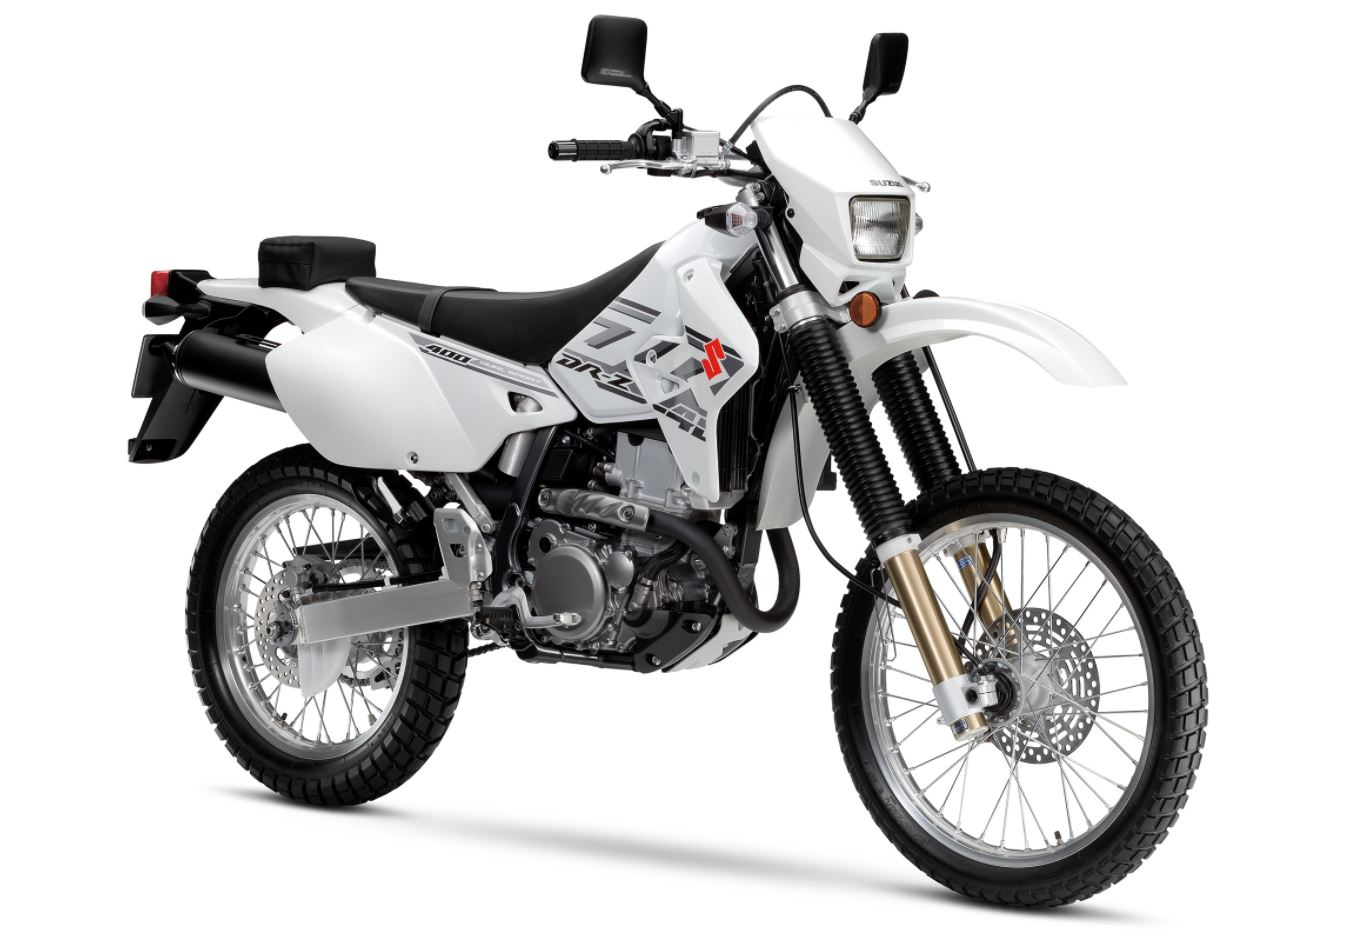 2018 suzuki drz400. fine suzuki the 2018 suzuki drz400s is the ideal dual purpose motorcycle for taking a  ride down an offroad trail or snaking ribbon of asphalt throughout suzuki drz400 1